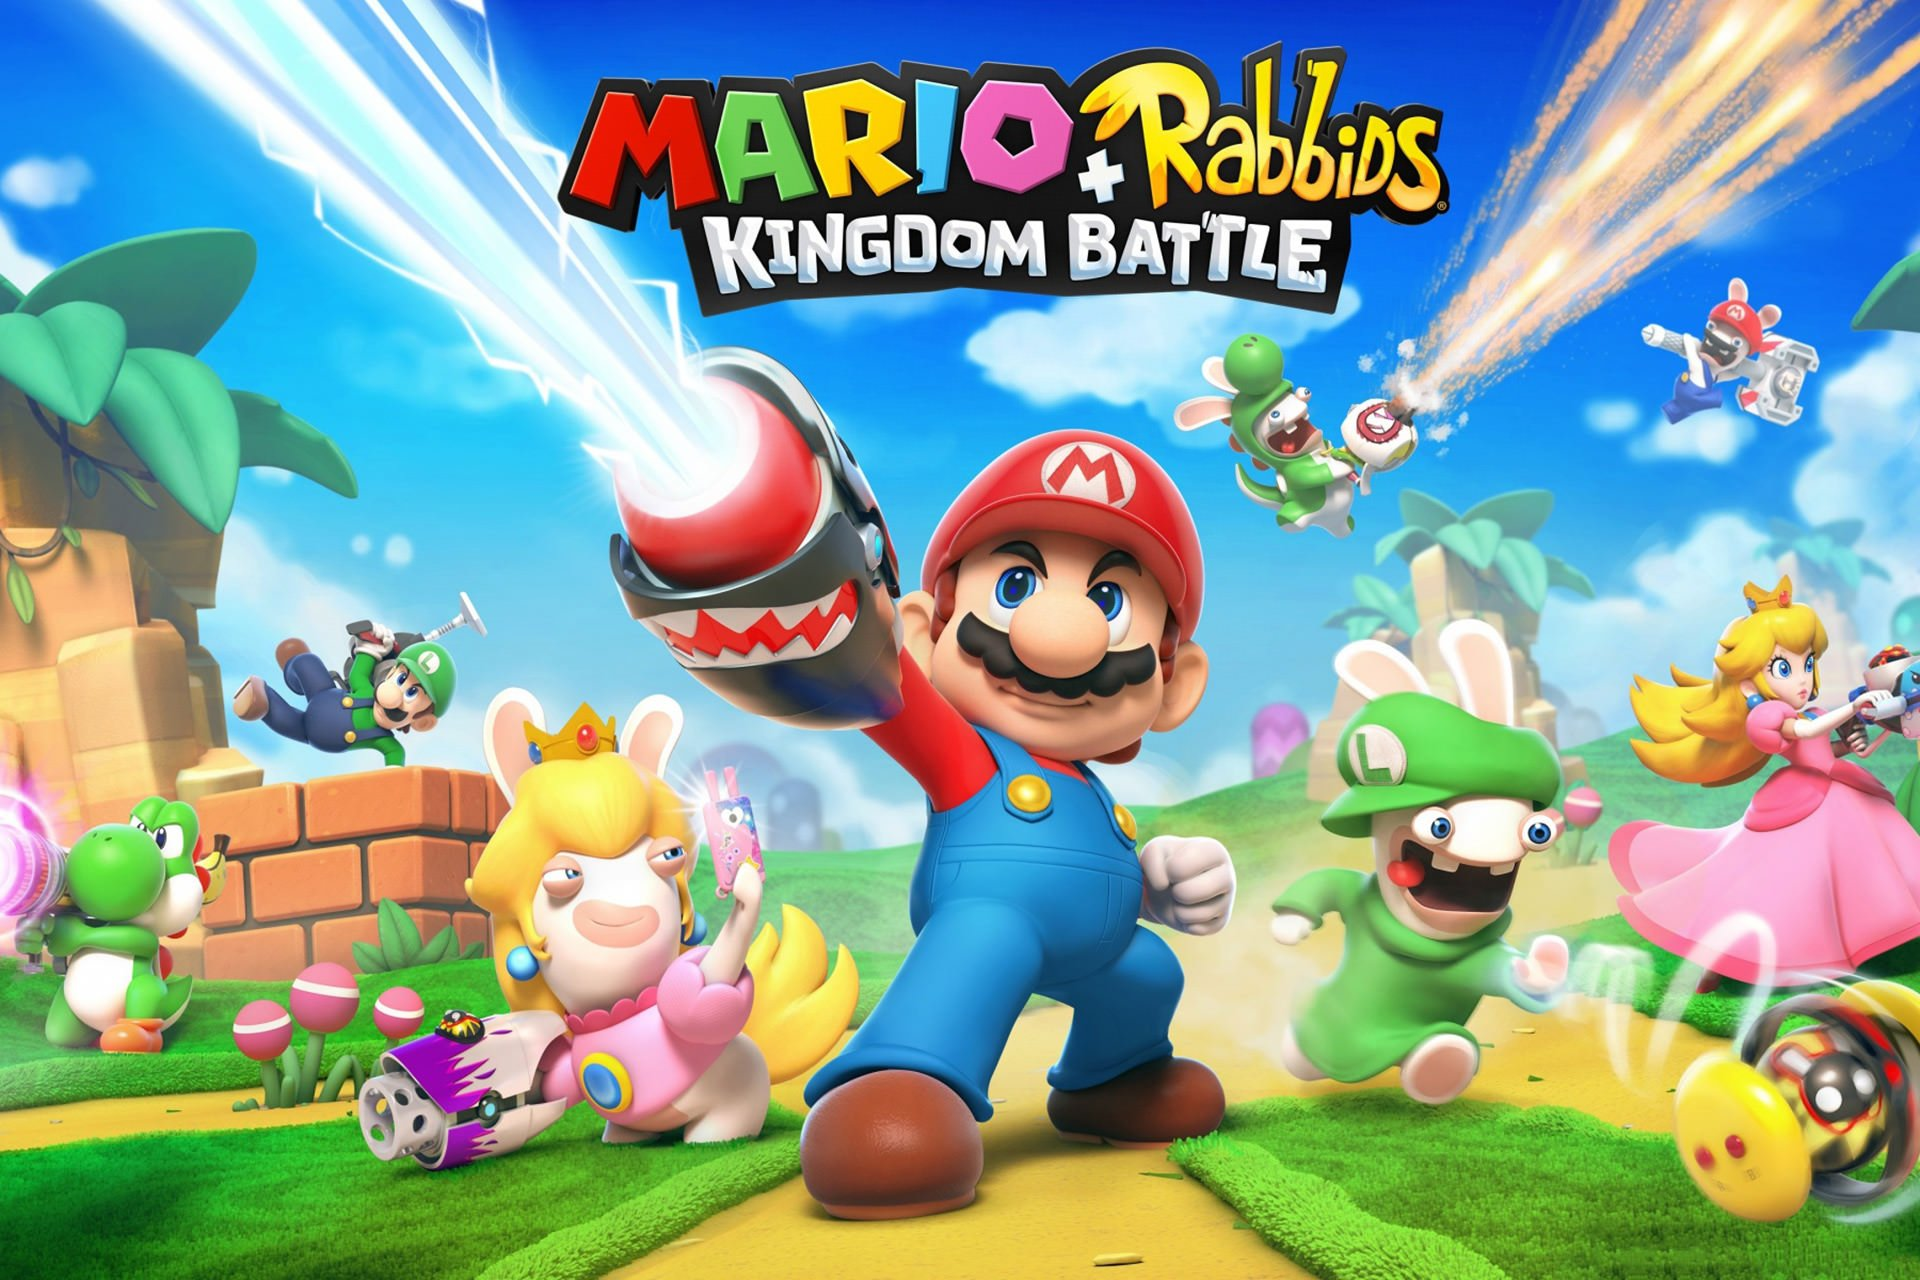 بررسی بازی Mario + Rabbids: Kingdom Battle